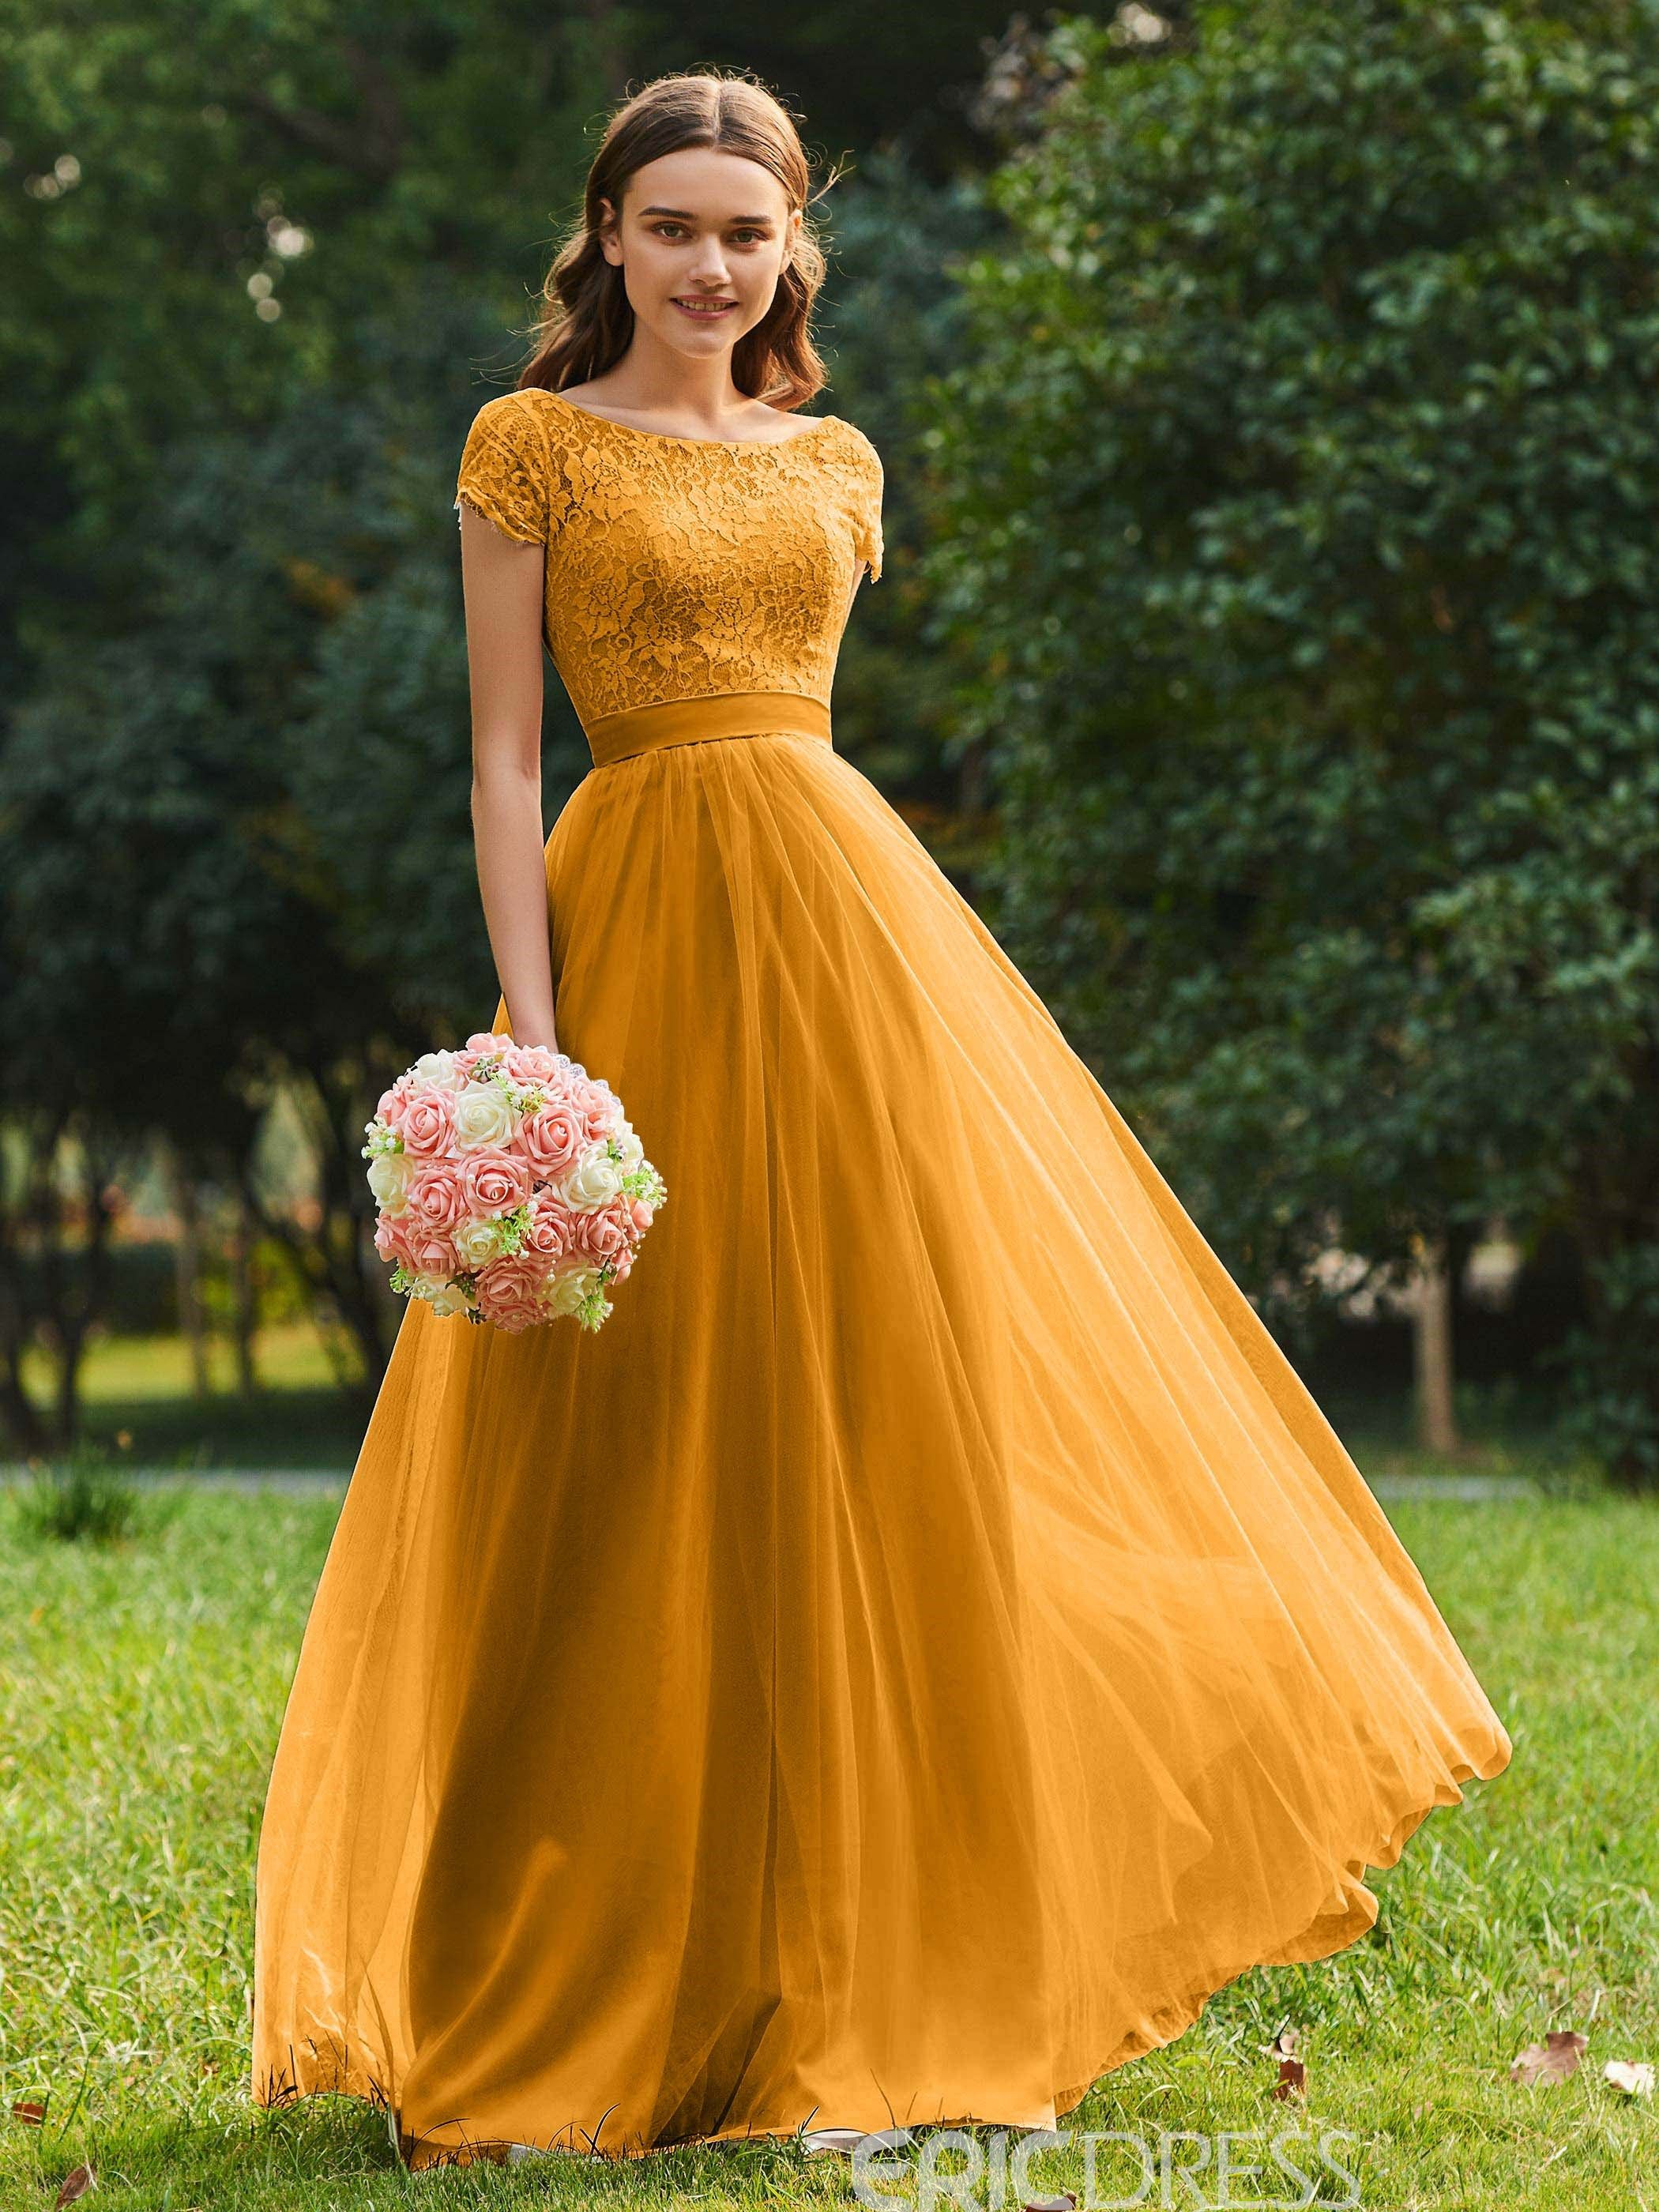 Ericdress Short Sleeves A Line Lace Bridesmaid Dress Yellow Bridesmaid Dresses Short Lace Bridesmaid Dresses Long Sleeve Bridesmaid Dress [ 2800 x 2100 Pixel ]